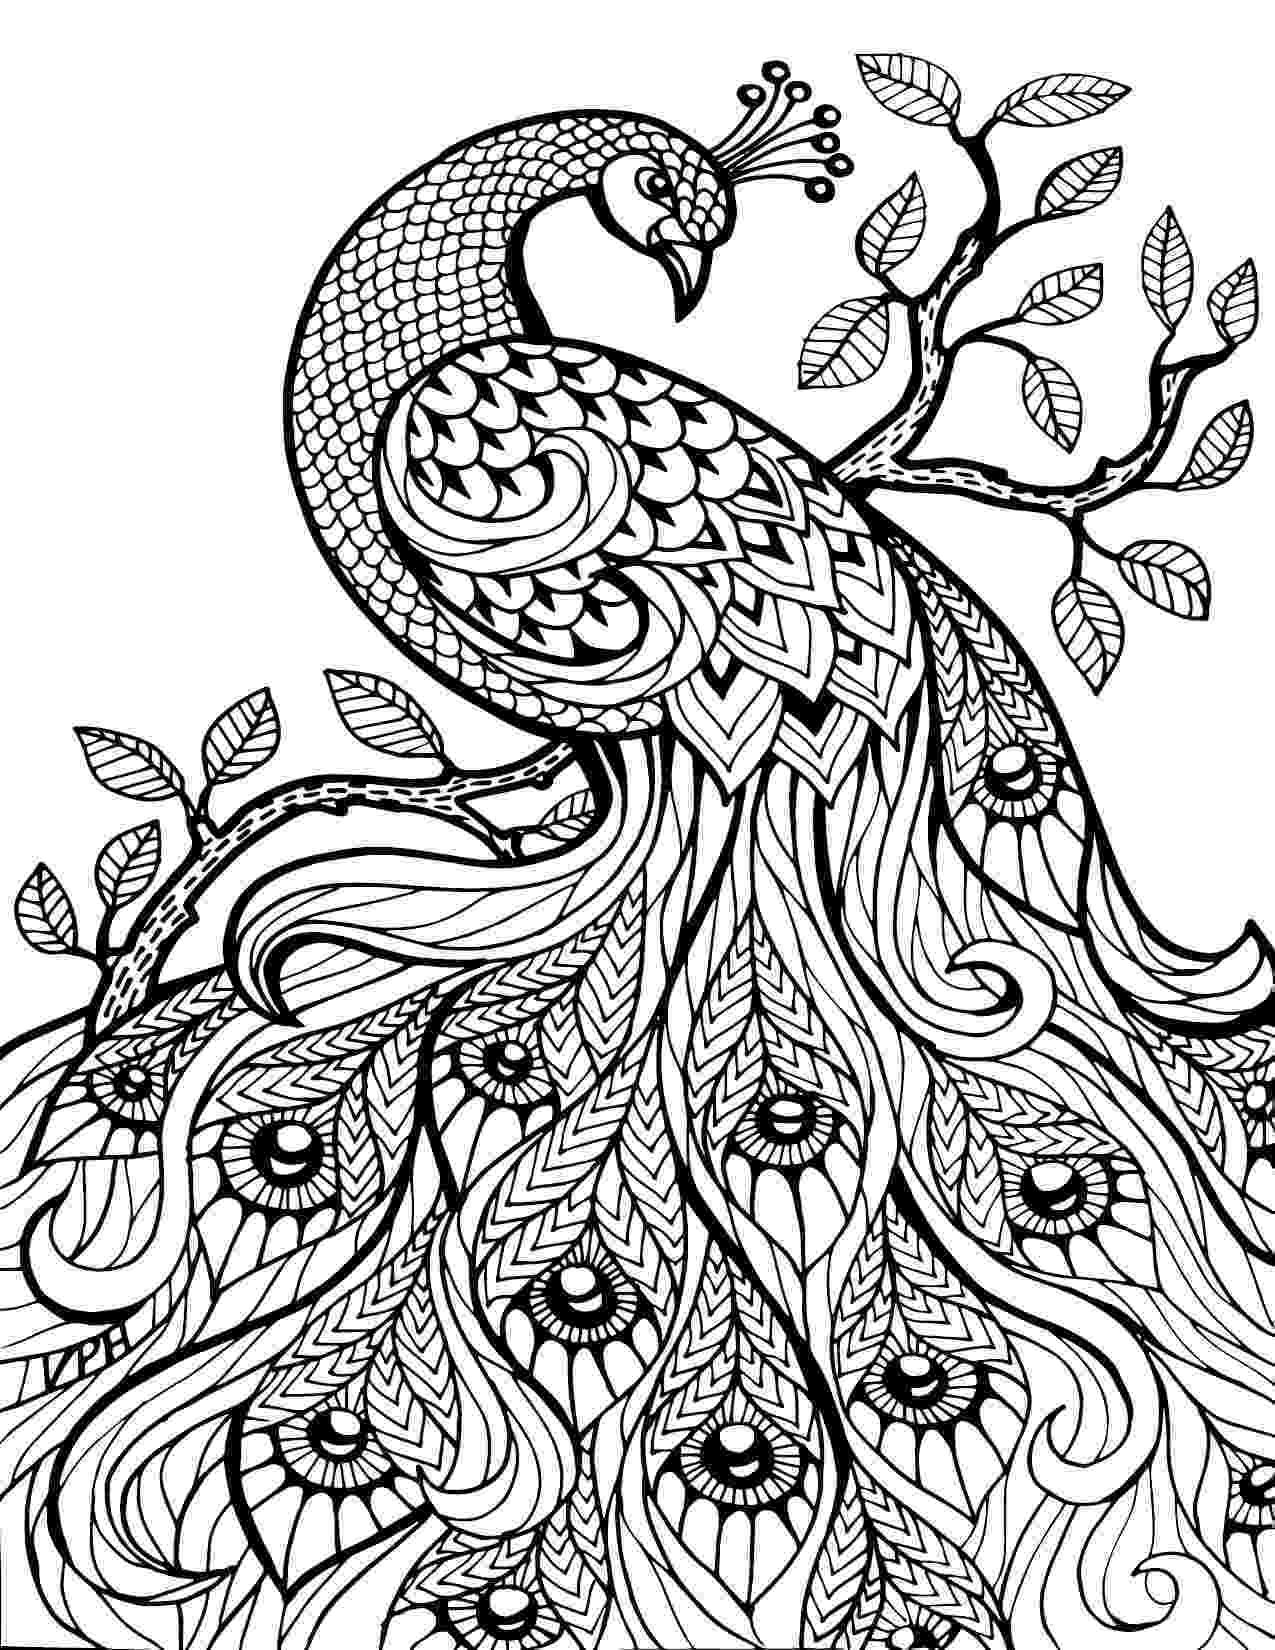 hard animal coloring pages coloring pages for adults difficult animals 57 coloring hard animal coloring pages